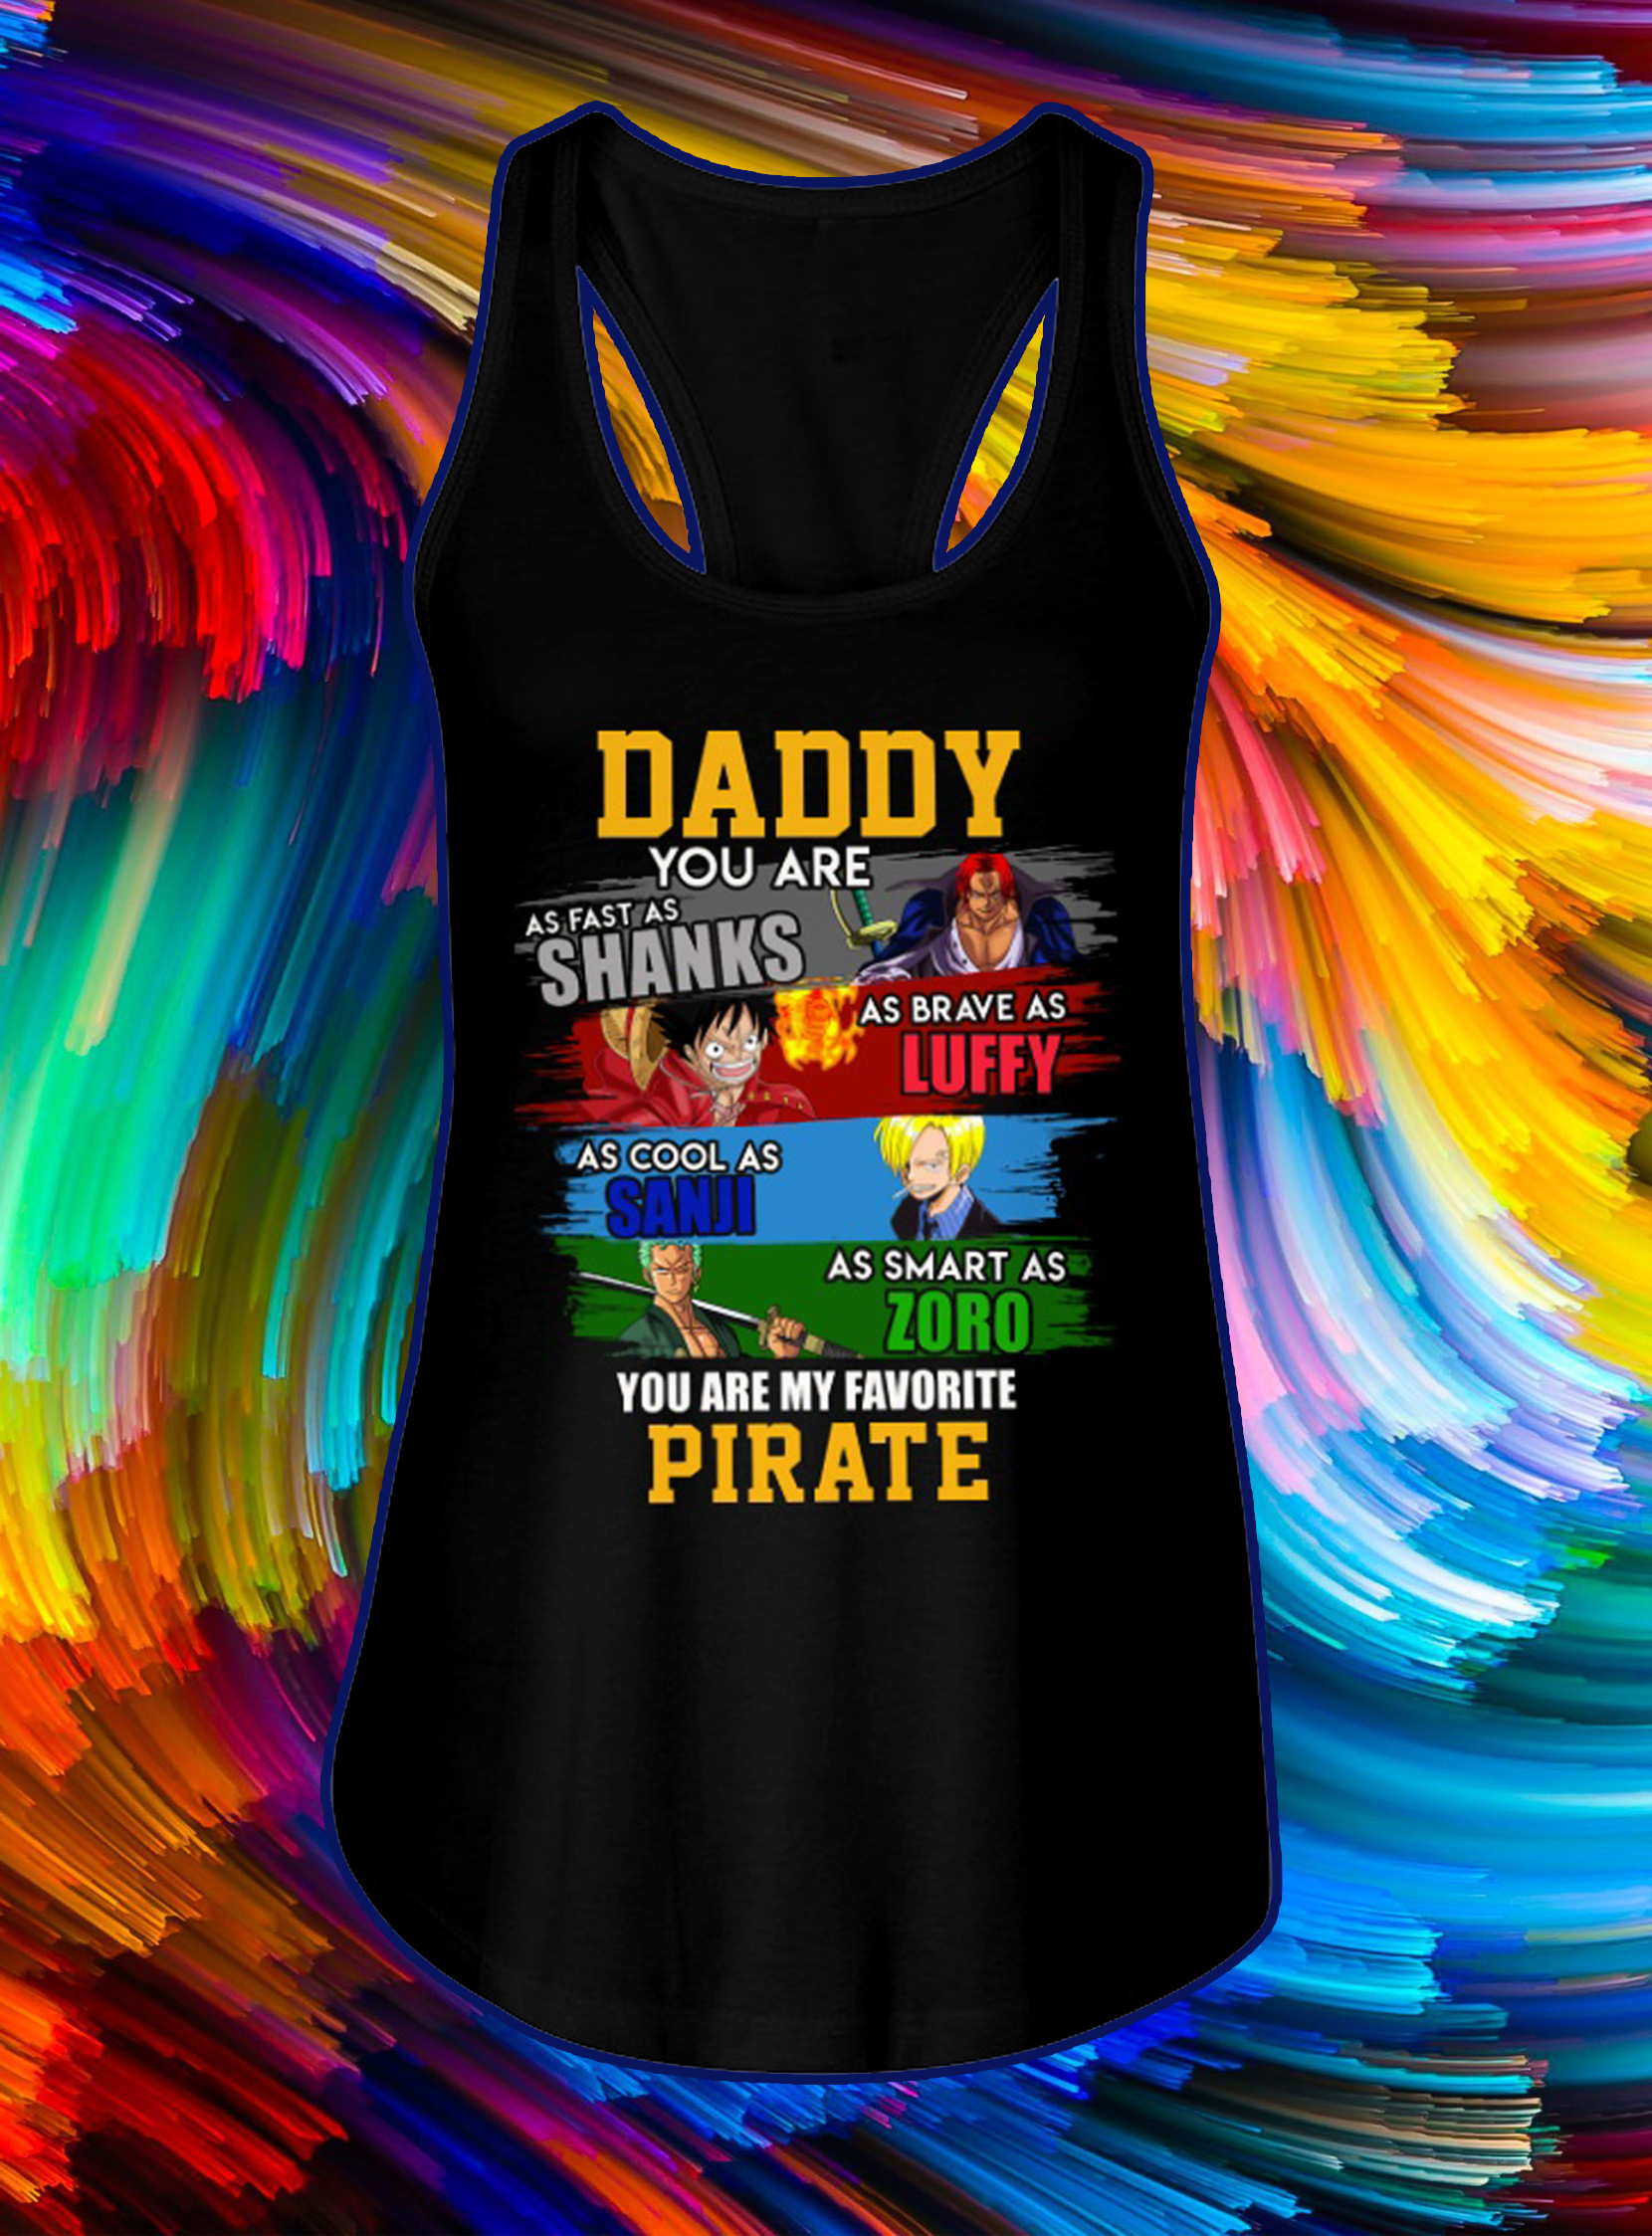 Daddy you are as fast as shanks as brave as lufy tank top